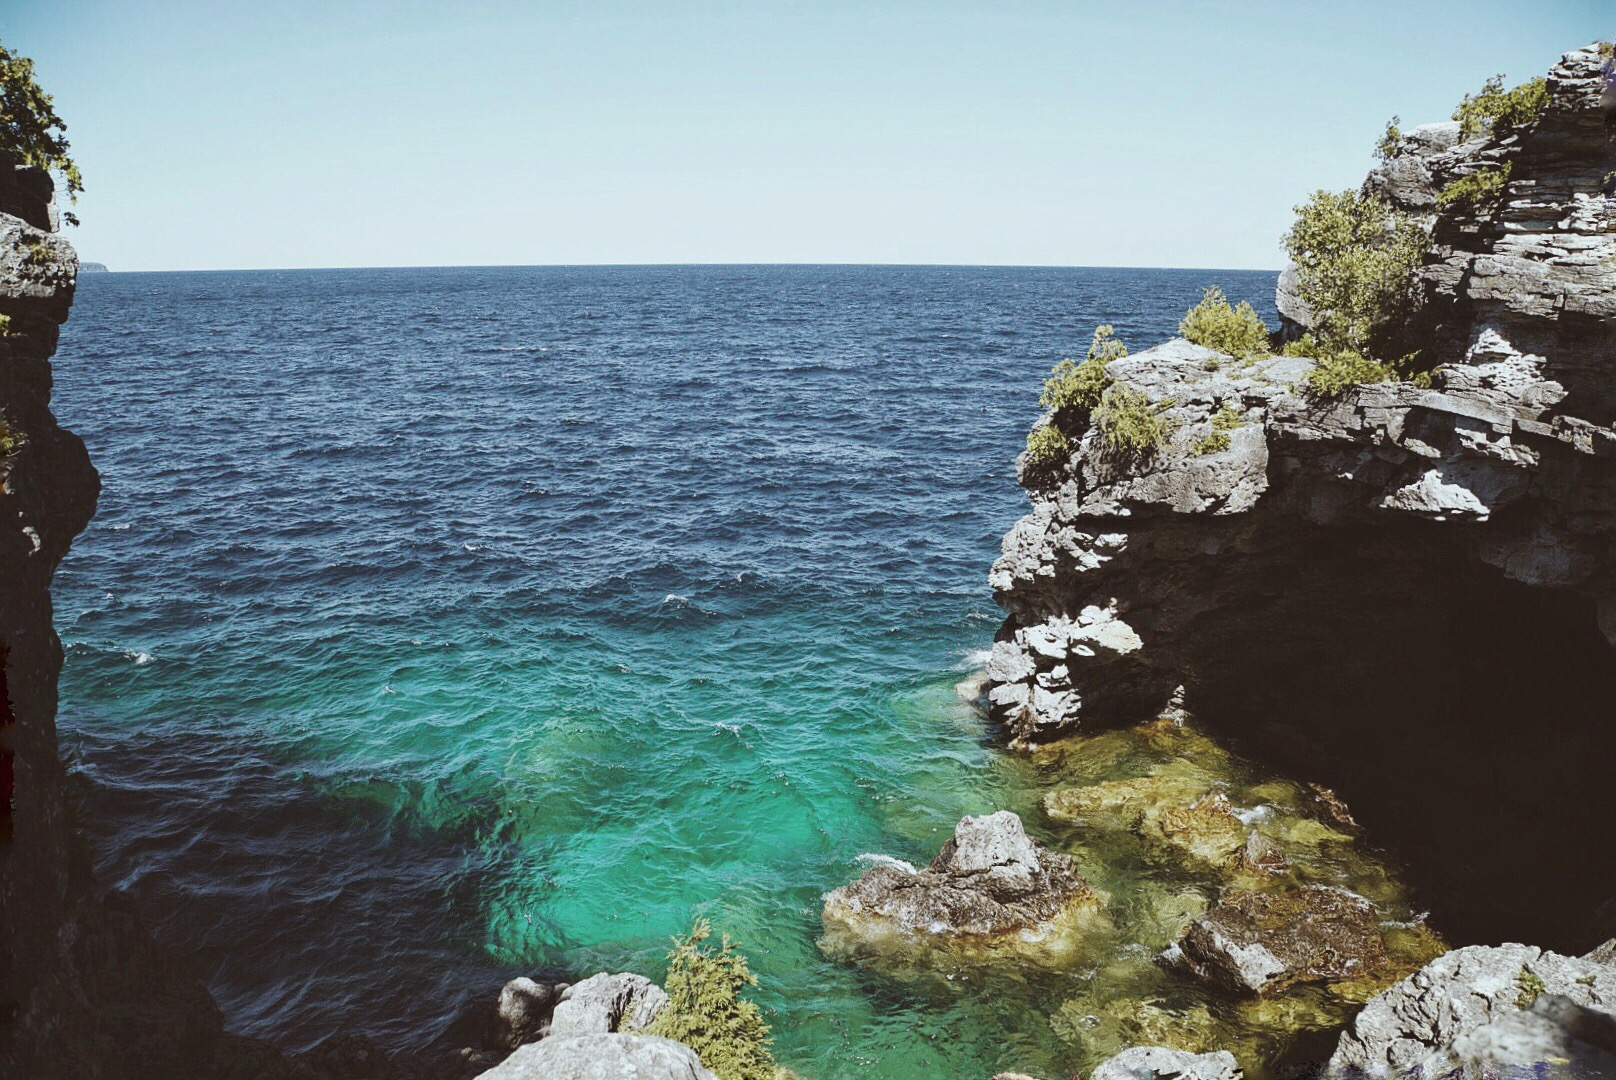 Indian Head Cove and the Grotto